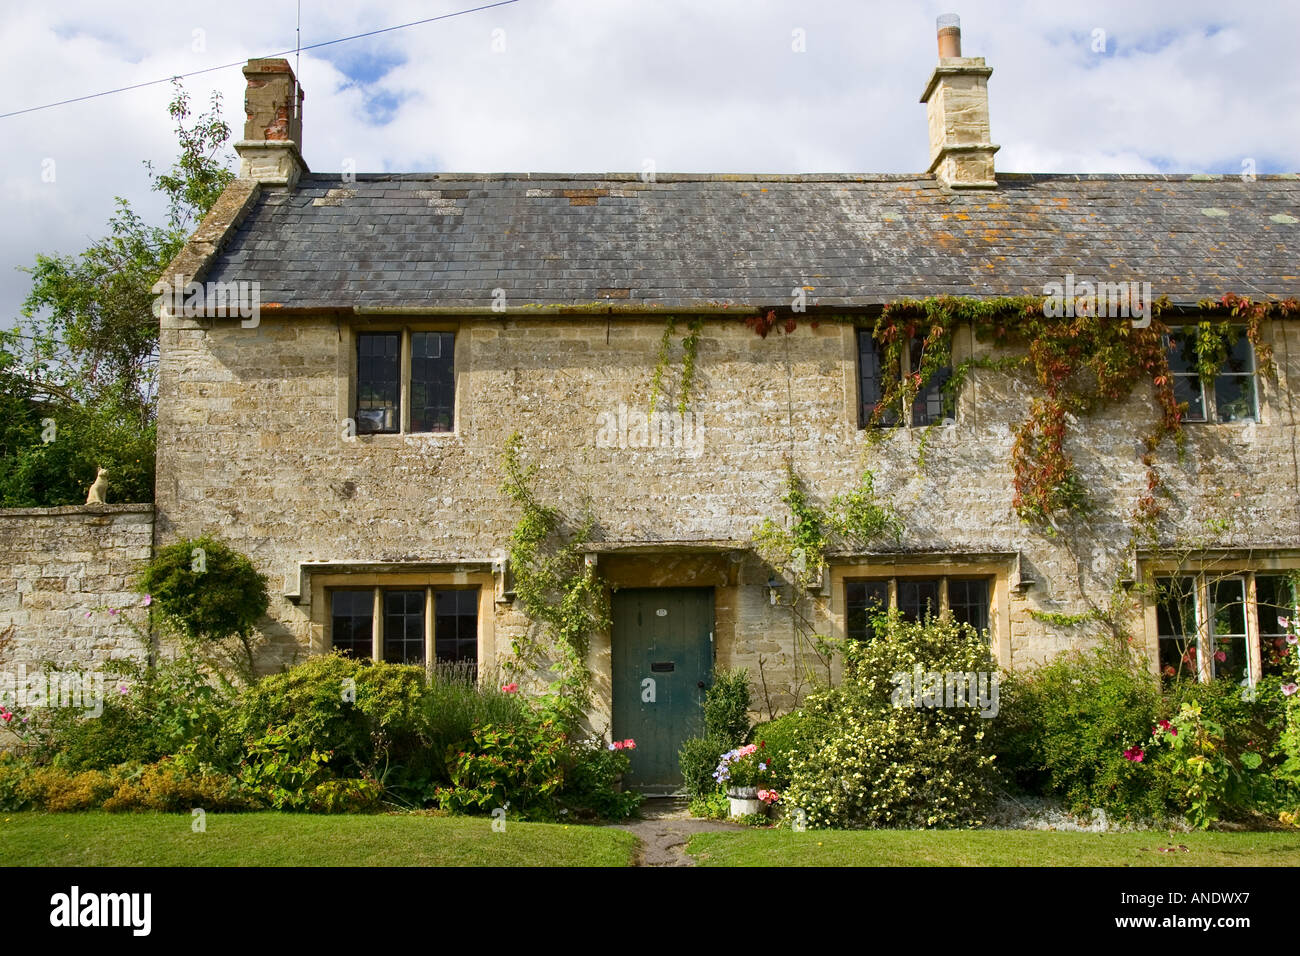 Country cottage in Windrush The Cotswolds Oxfordshire United Kingdom Stock Photo